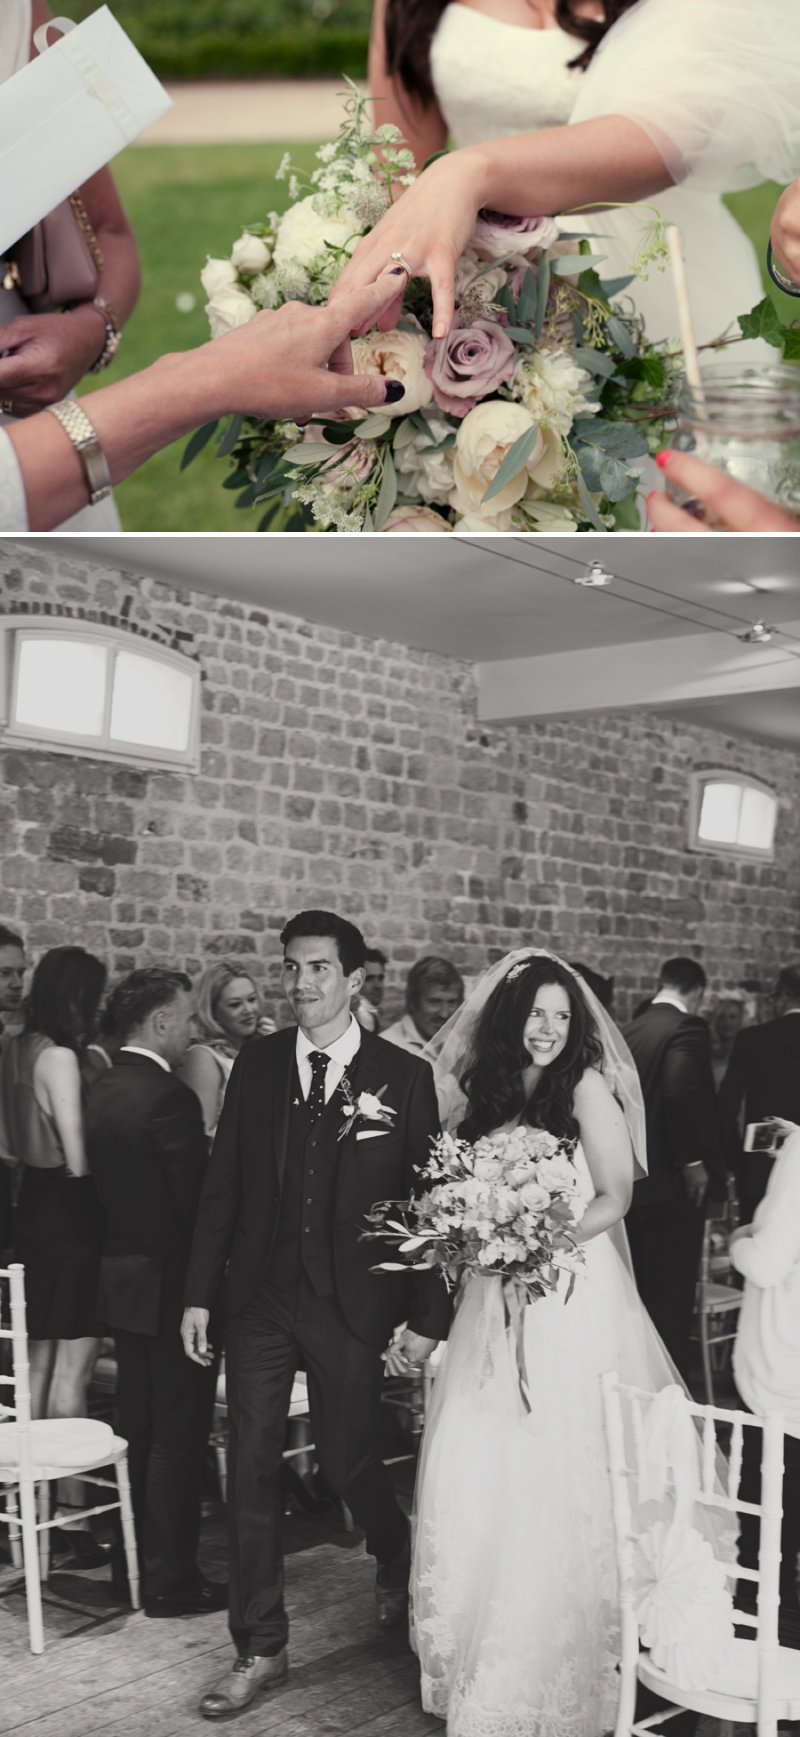 Stylish Wedding At The Walled Garden Cowdray With Bride In San Patrick Dress And Jimmy Choo Shoes And A Malene Birger Sequinned Jacket And Groom In Navy Suit From Topman 5 The Modern Love Letter.